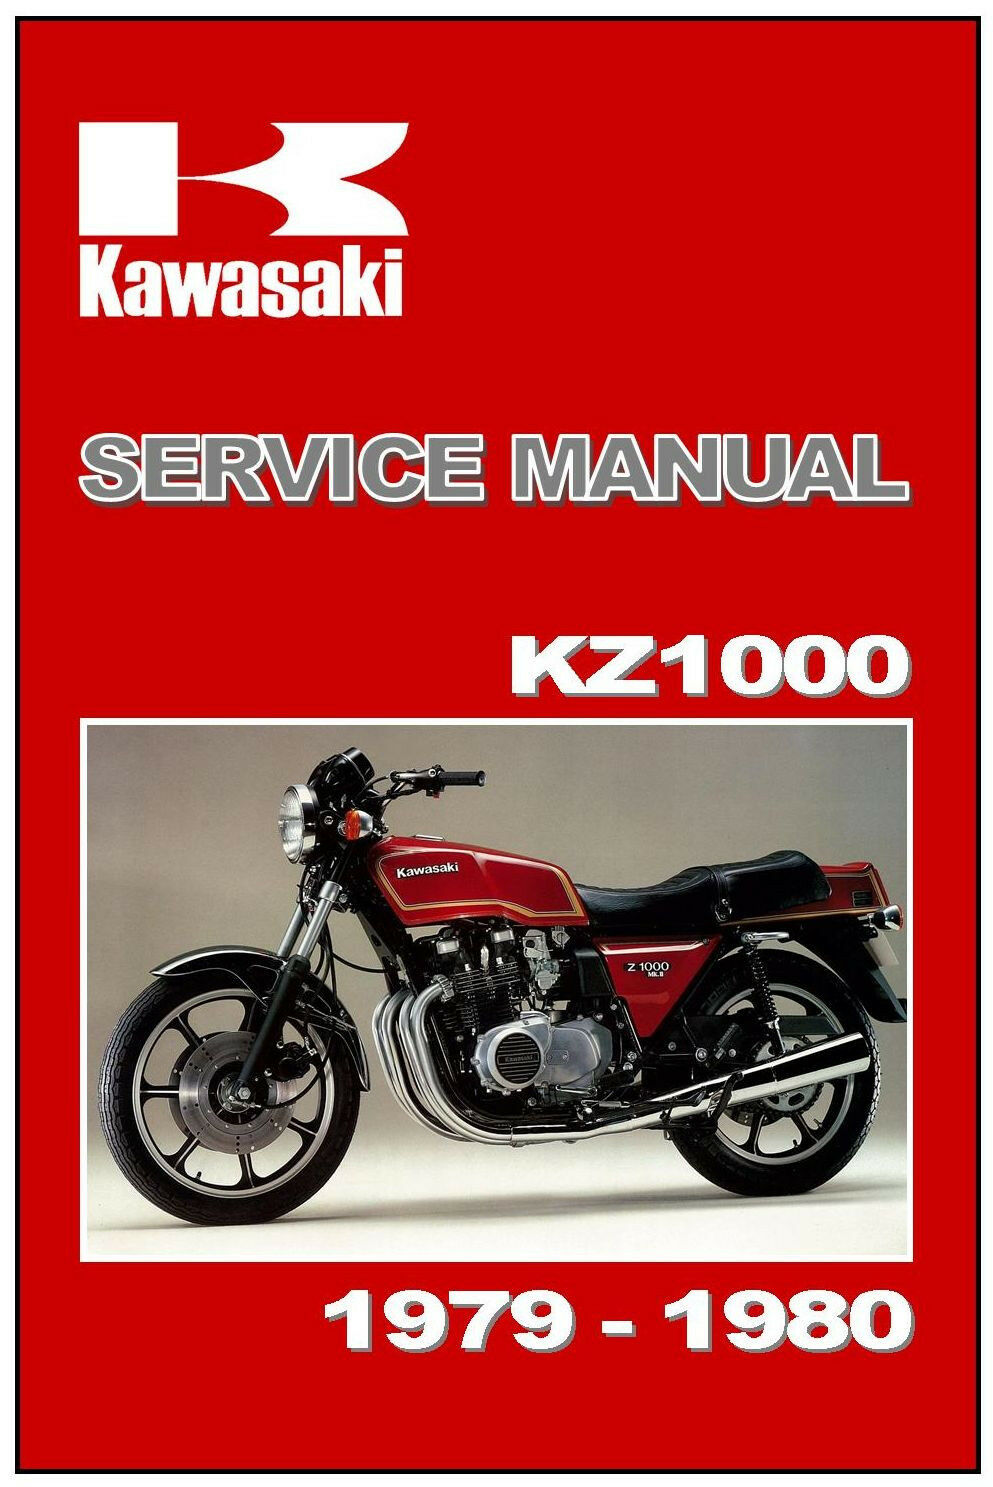 KAWASAKI Workshop Manual KZ1000 Z1000 Z1R MkII 1978 1979 & 1980 Service &  Repair 1 of 2Only 1 available ...